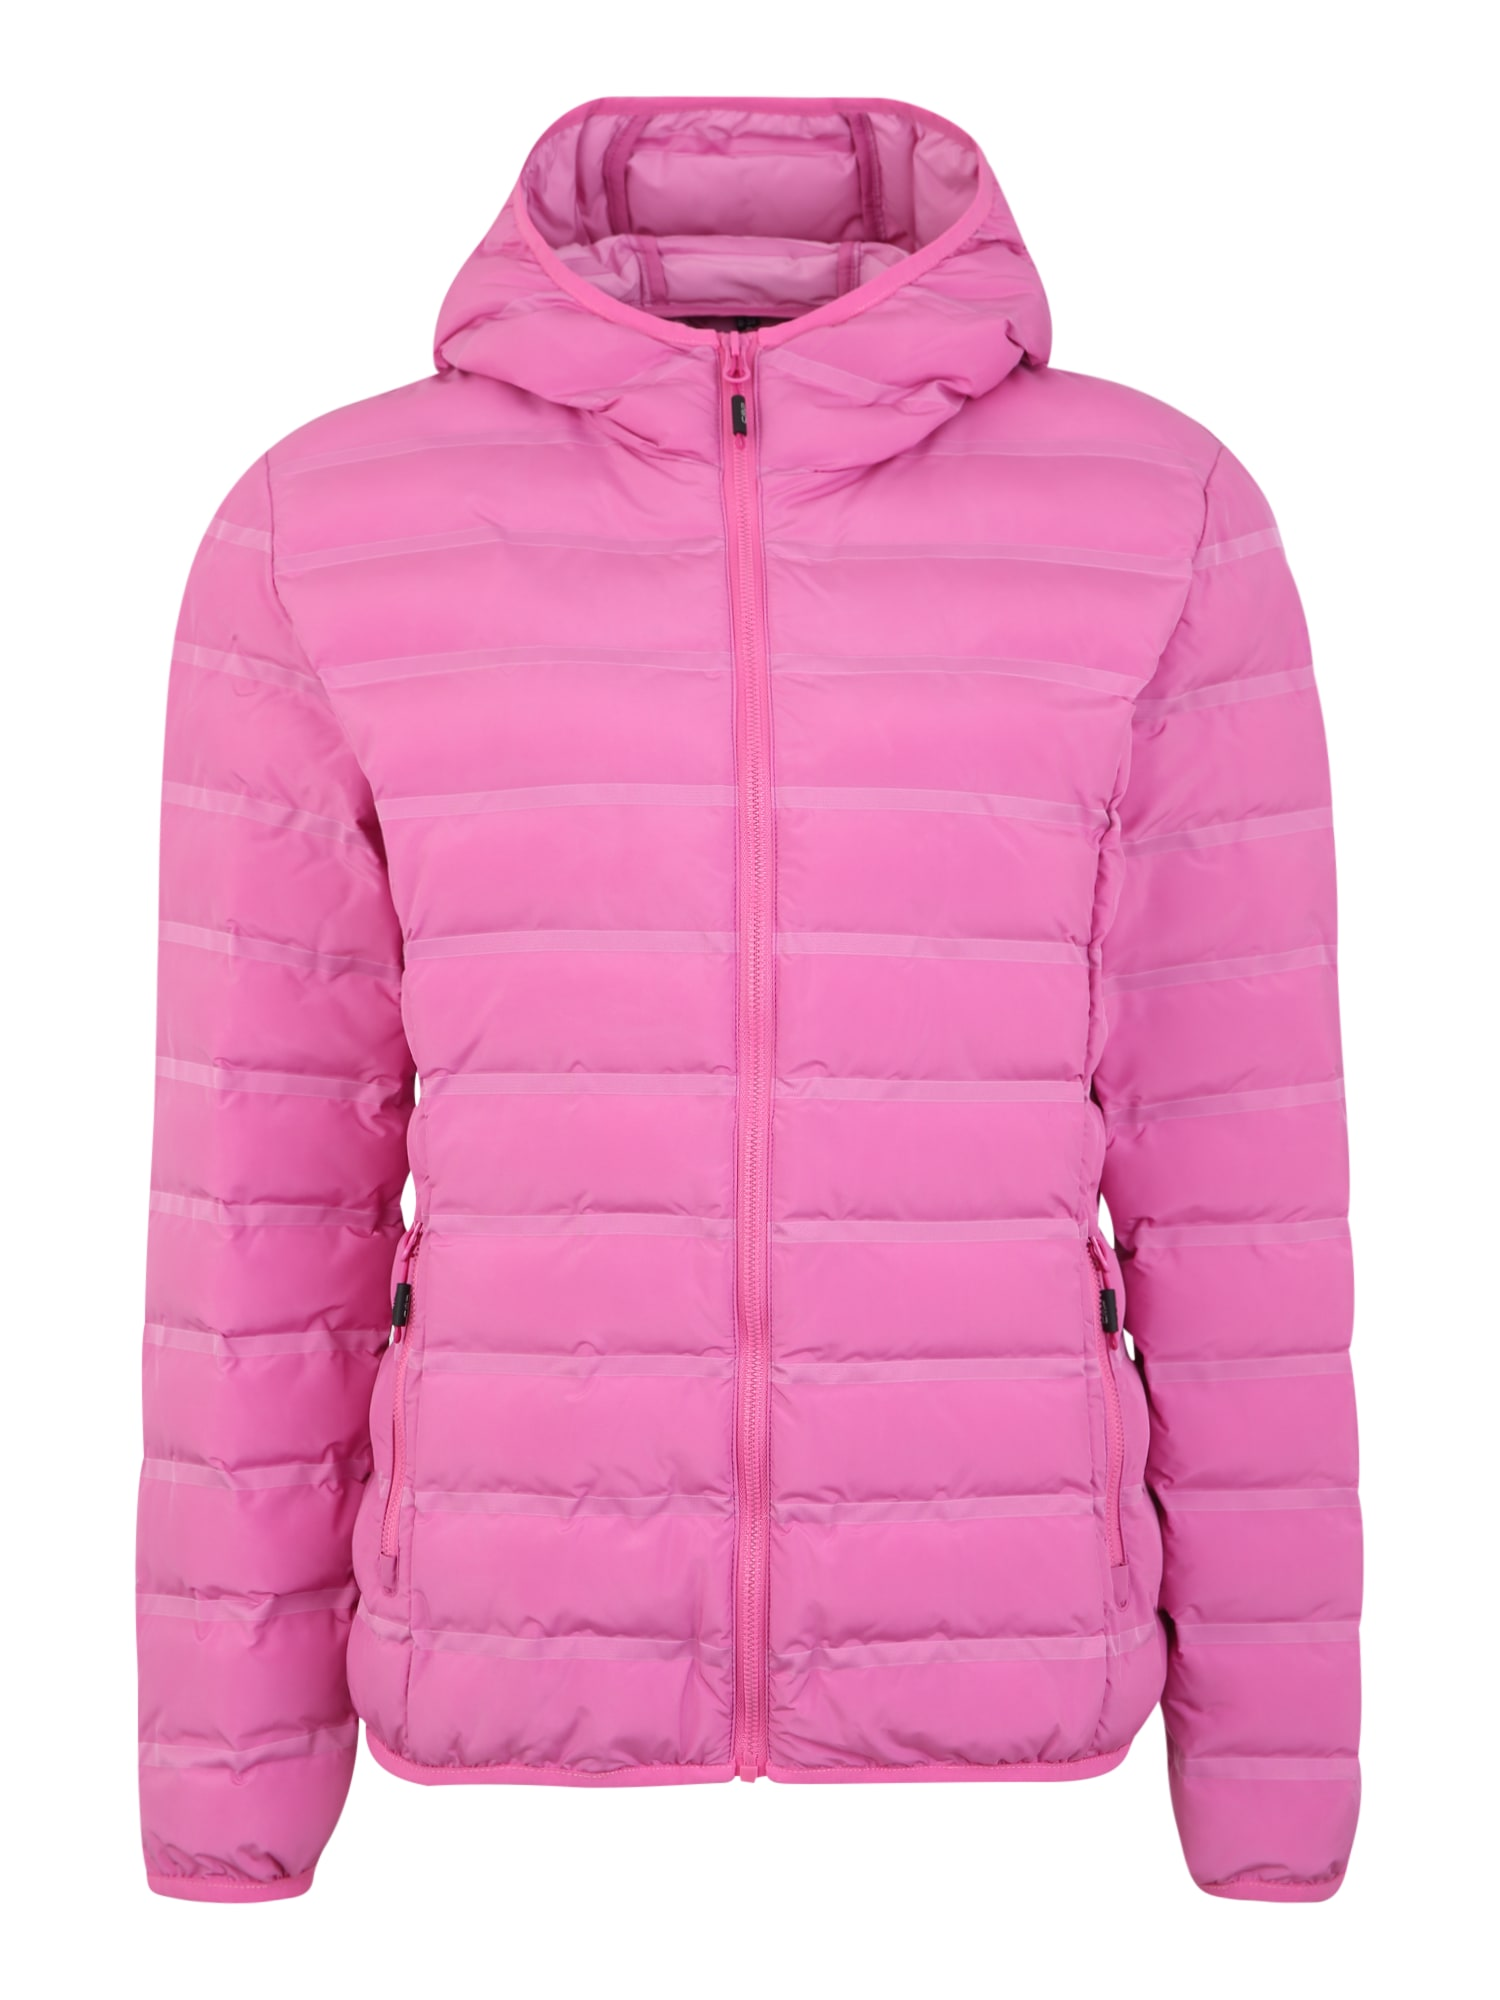 Outdoorová bunda WOMAN JACKET FIX HOOD pink CMP